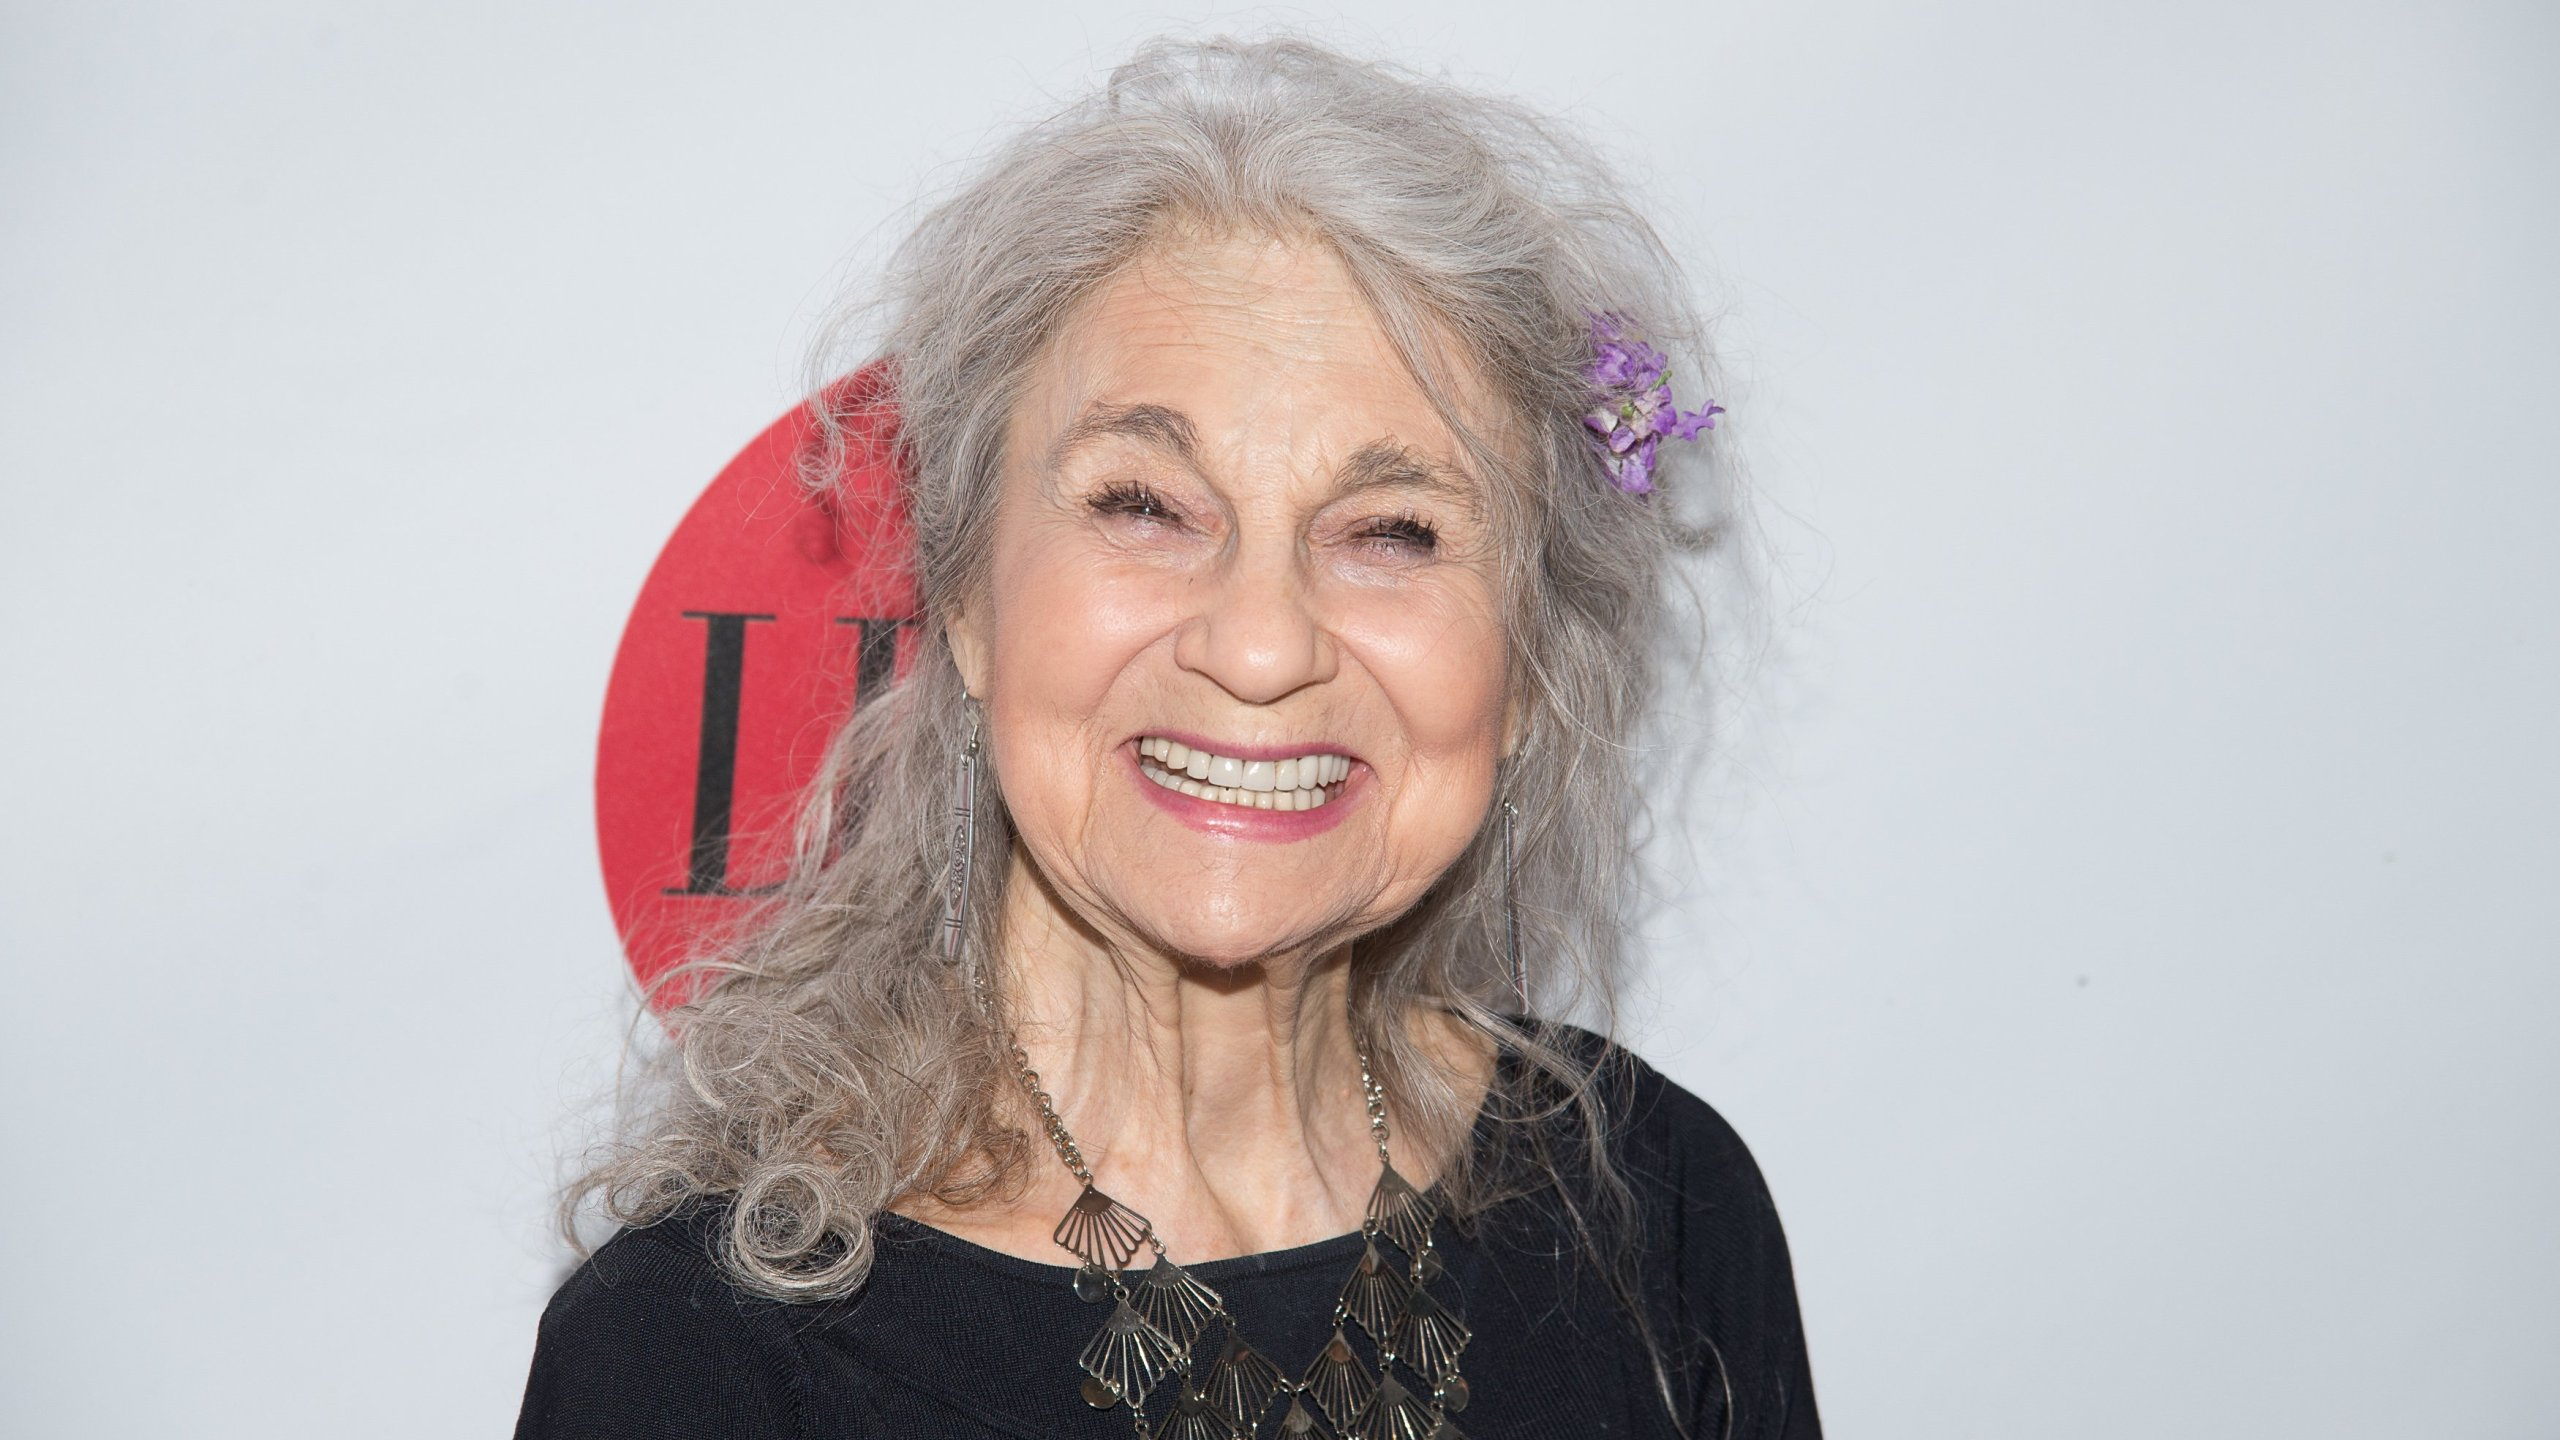 Lynn Cohen attends the Lilly Awards at Playwrights Horizons on June 2, 2014 in New York City. (Credit: Dave Kotinsky/Getty Images)